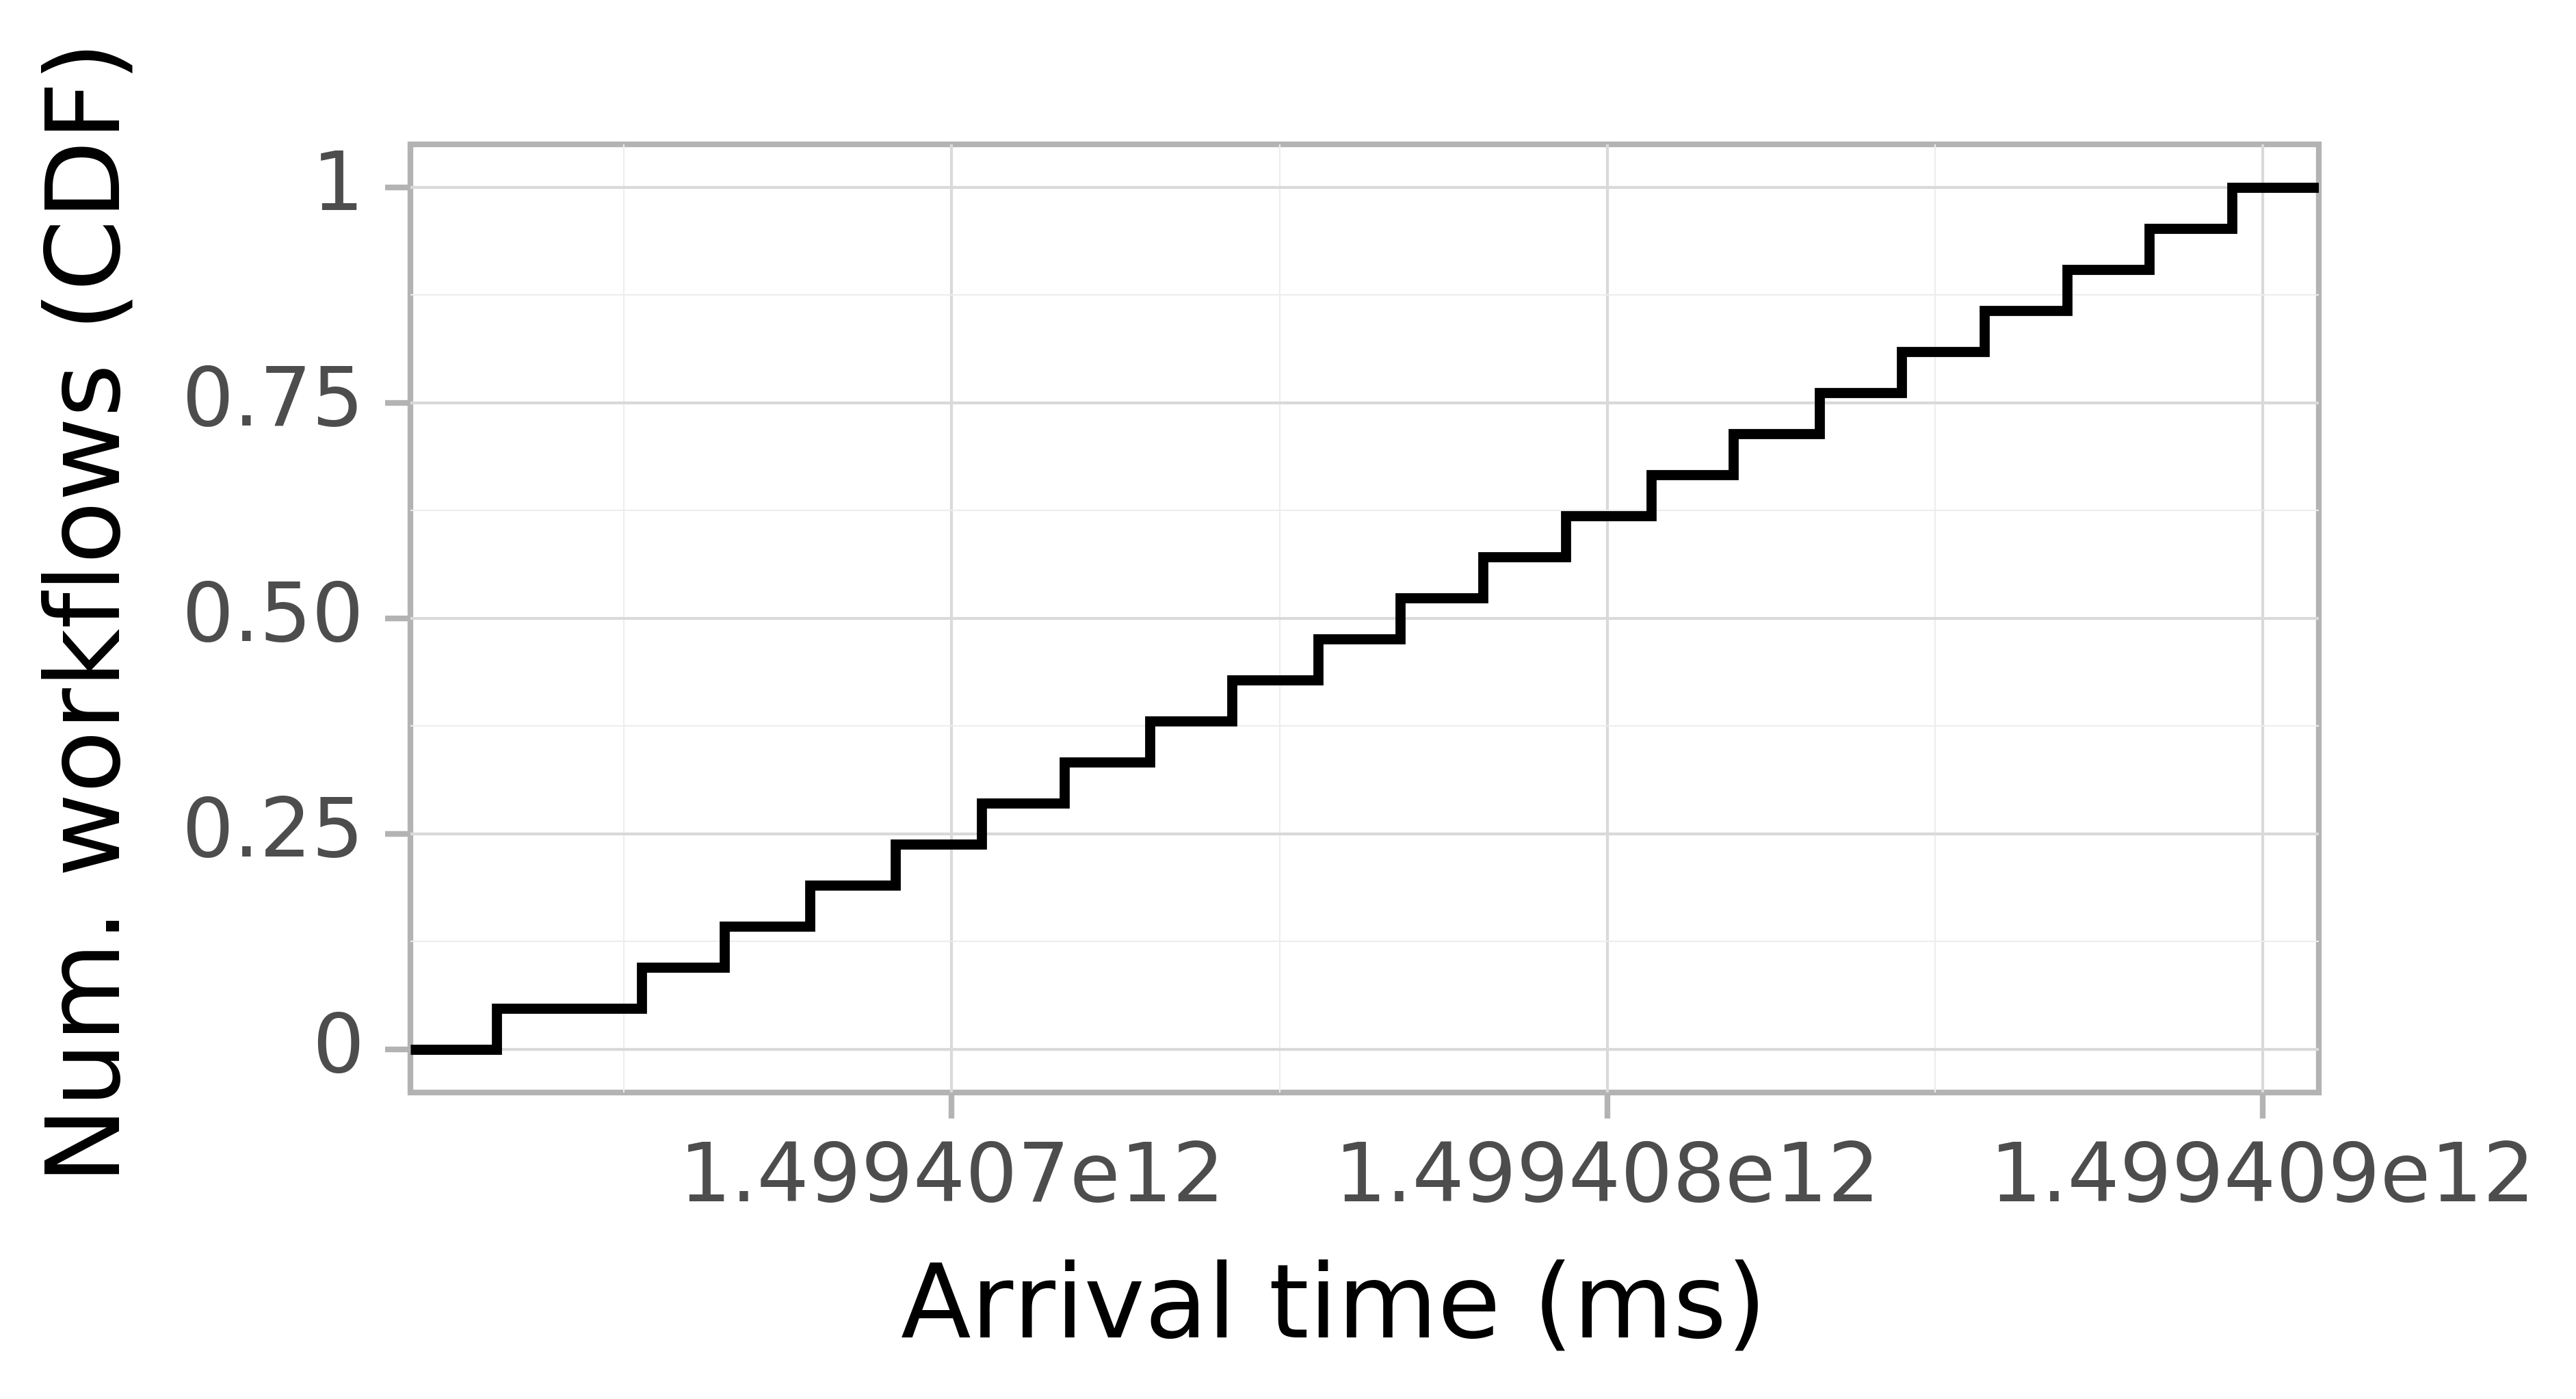 Job arrival CDF graph for the askalon-new_ee12 trace.